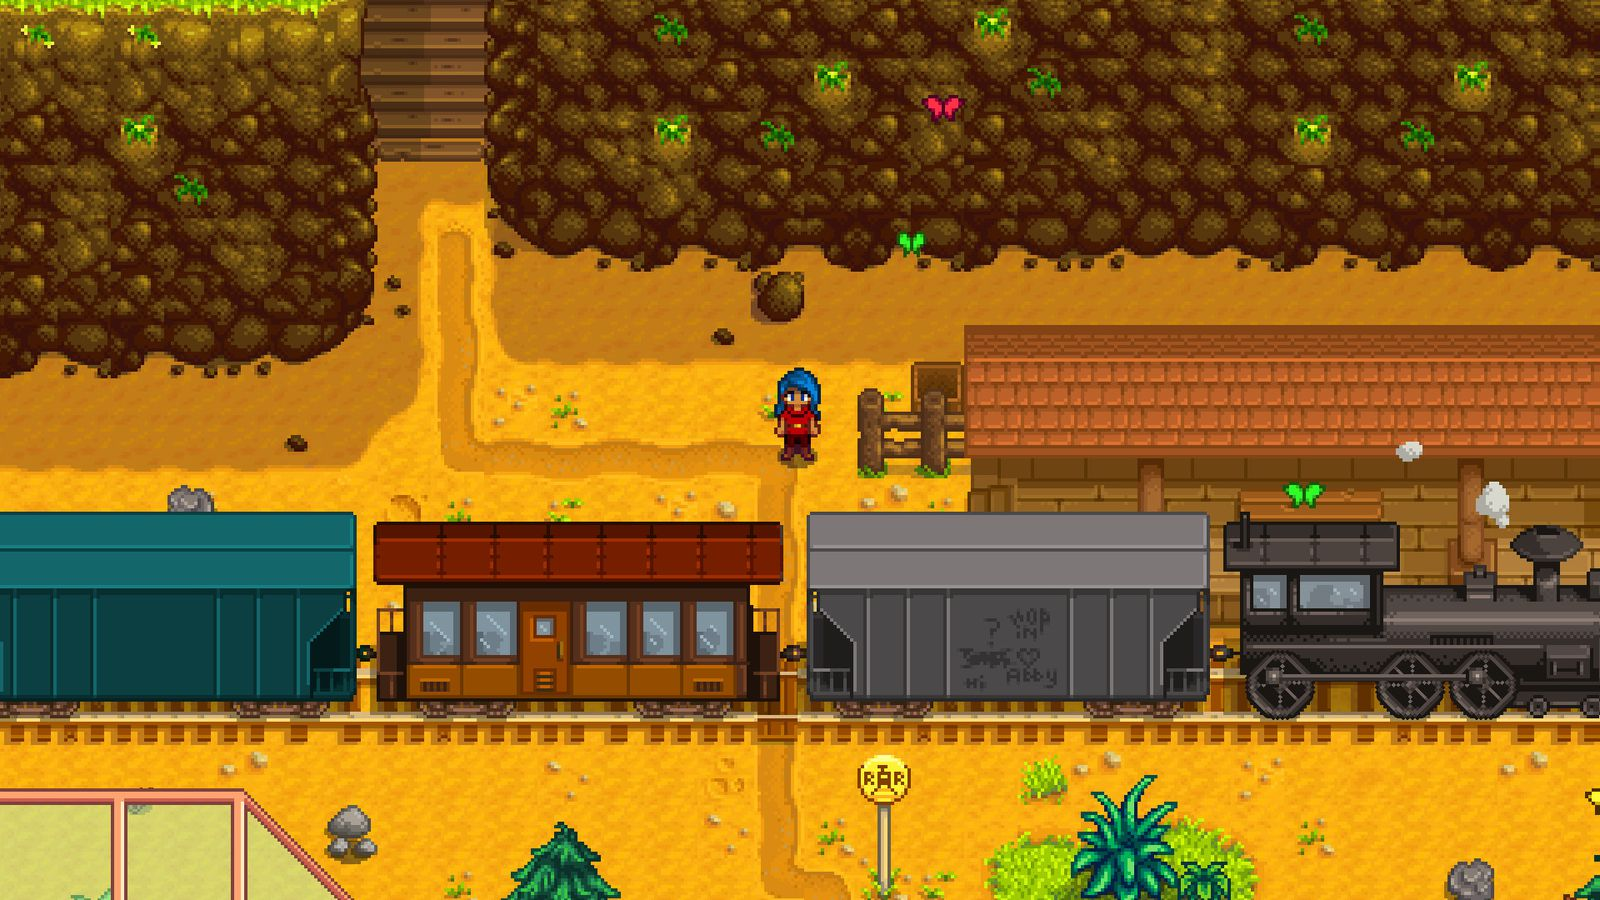 Stardew Valley is good but not perfect, creator says one year later